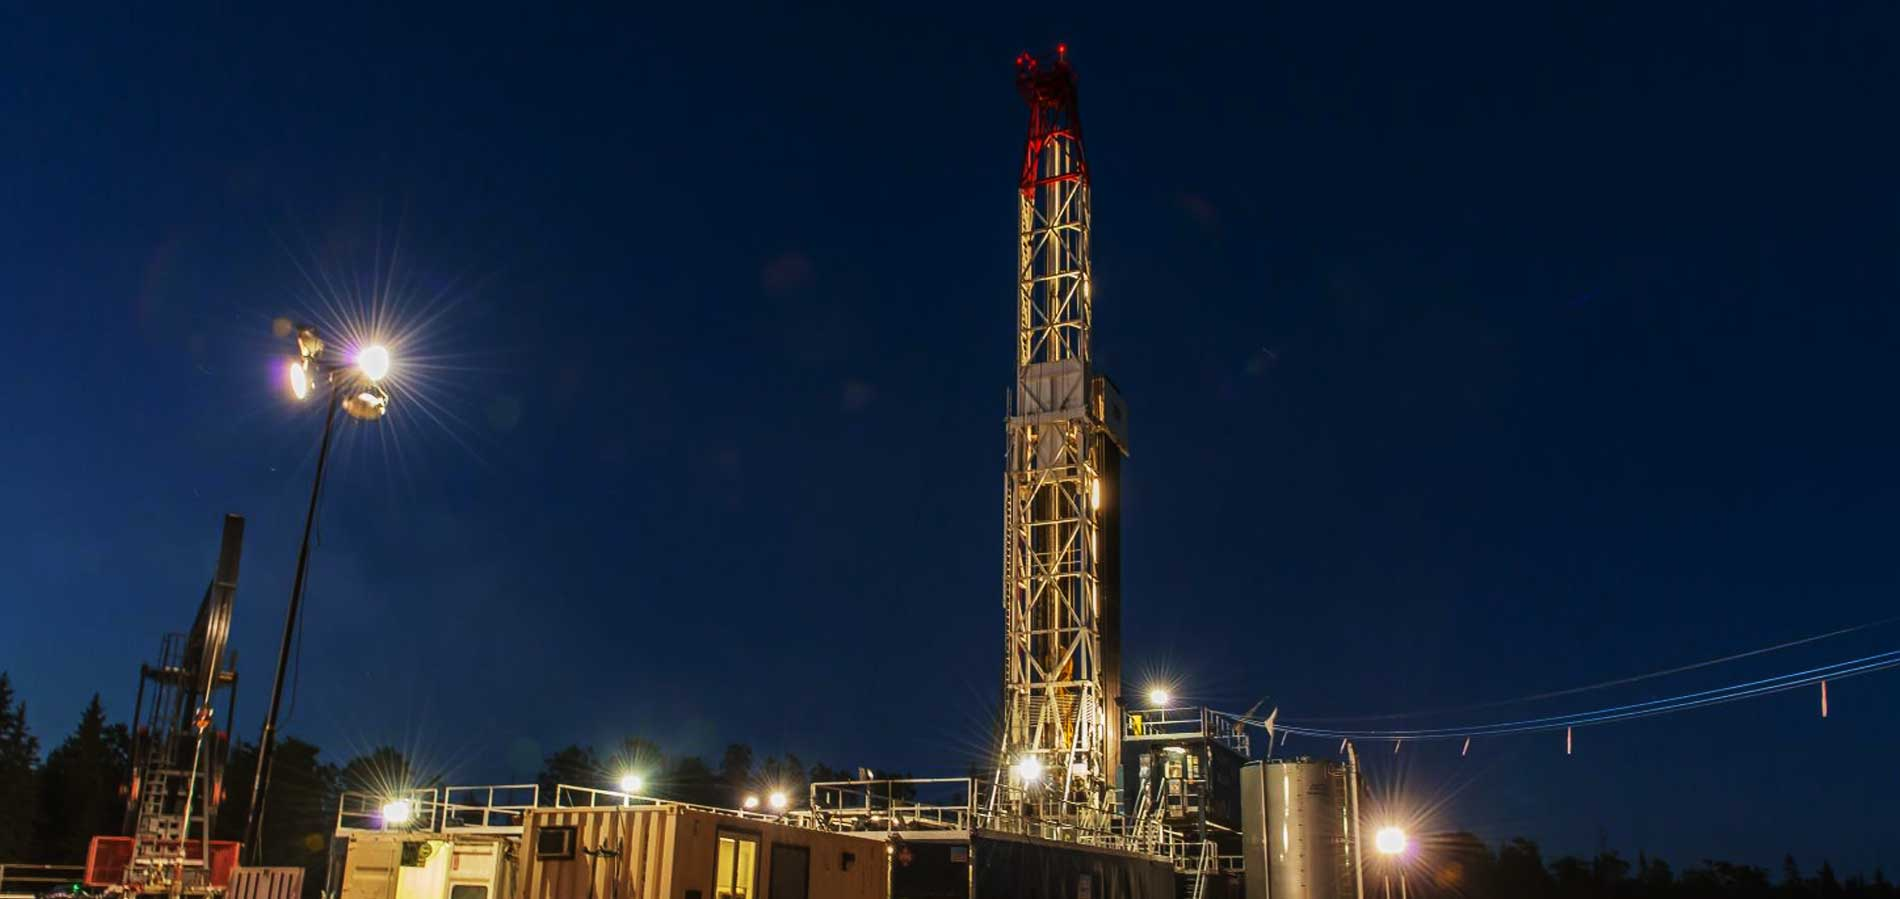 twilight drilling-rig